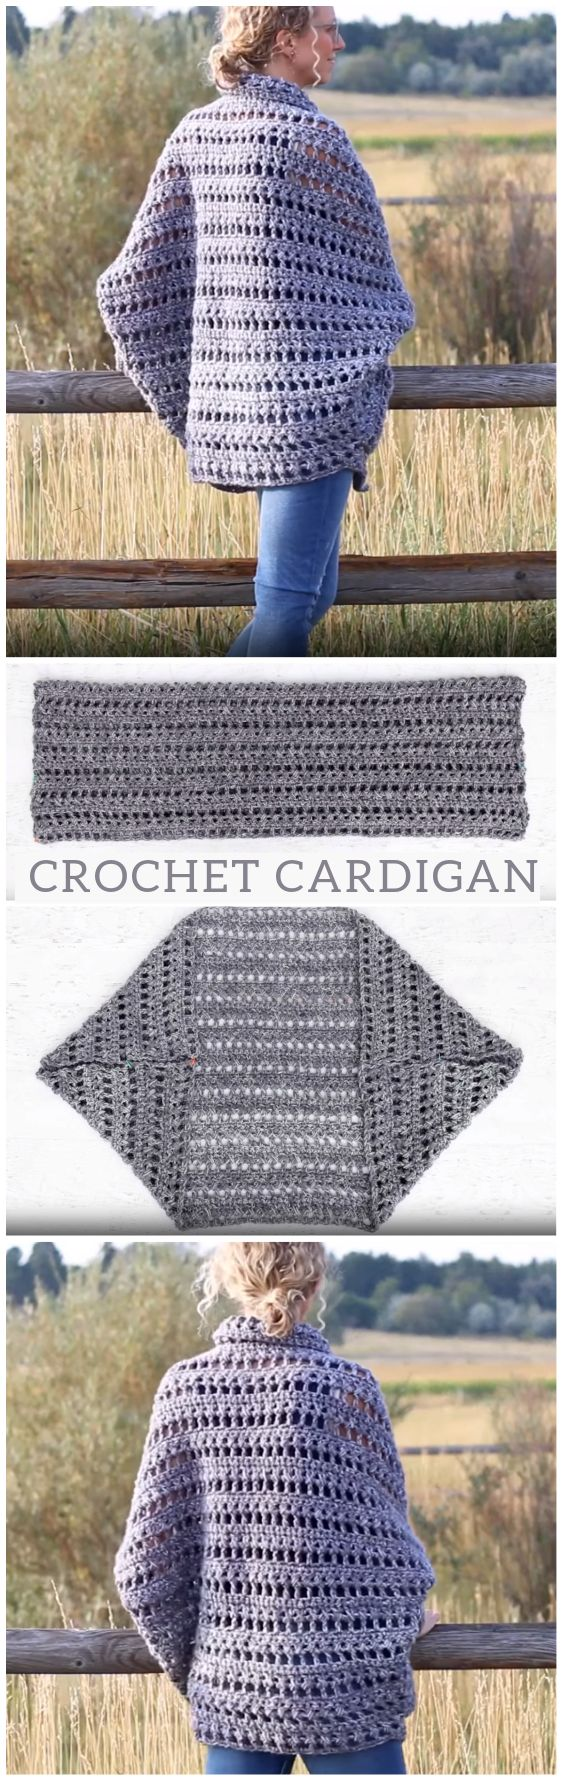 CrochetPatterns CrochetPatterns Crochet Cardigan Tutorial is one of the rarest free video tutorial available on the internet market. We share this step by step guided video tutorial absolutely free for our users. Skills needed include double crochet and post stitches, although if…Read More »